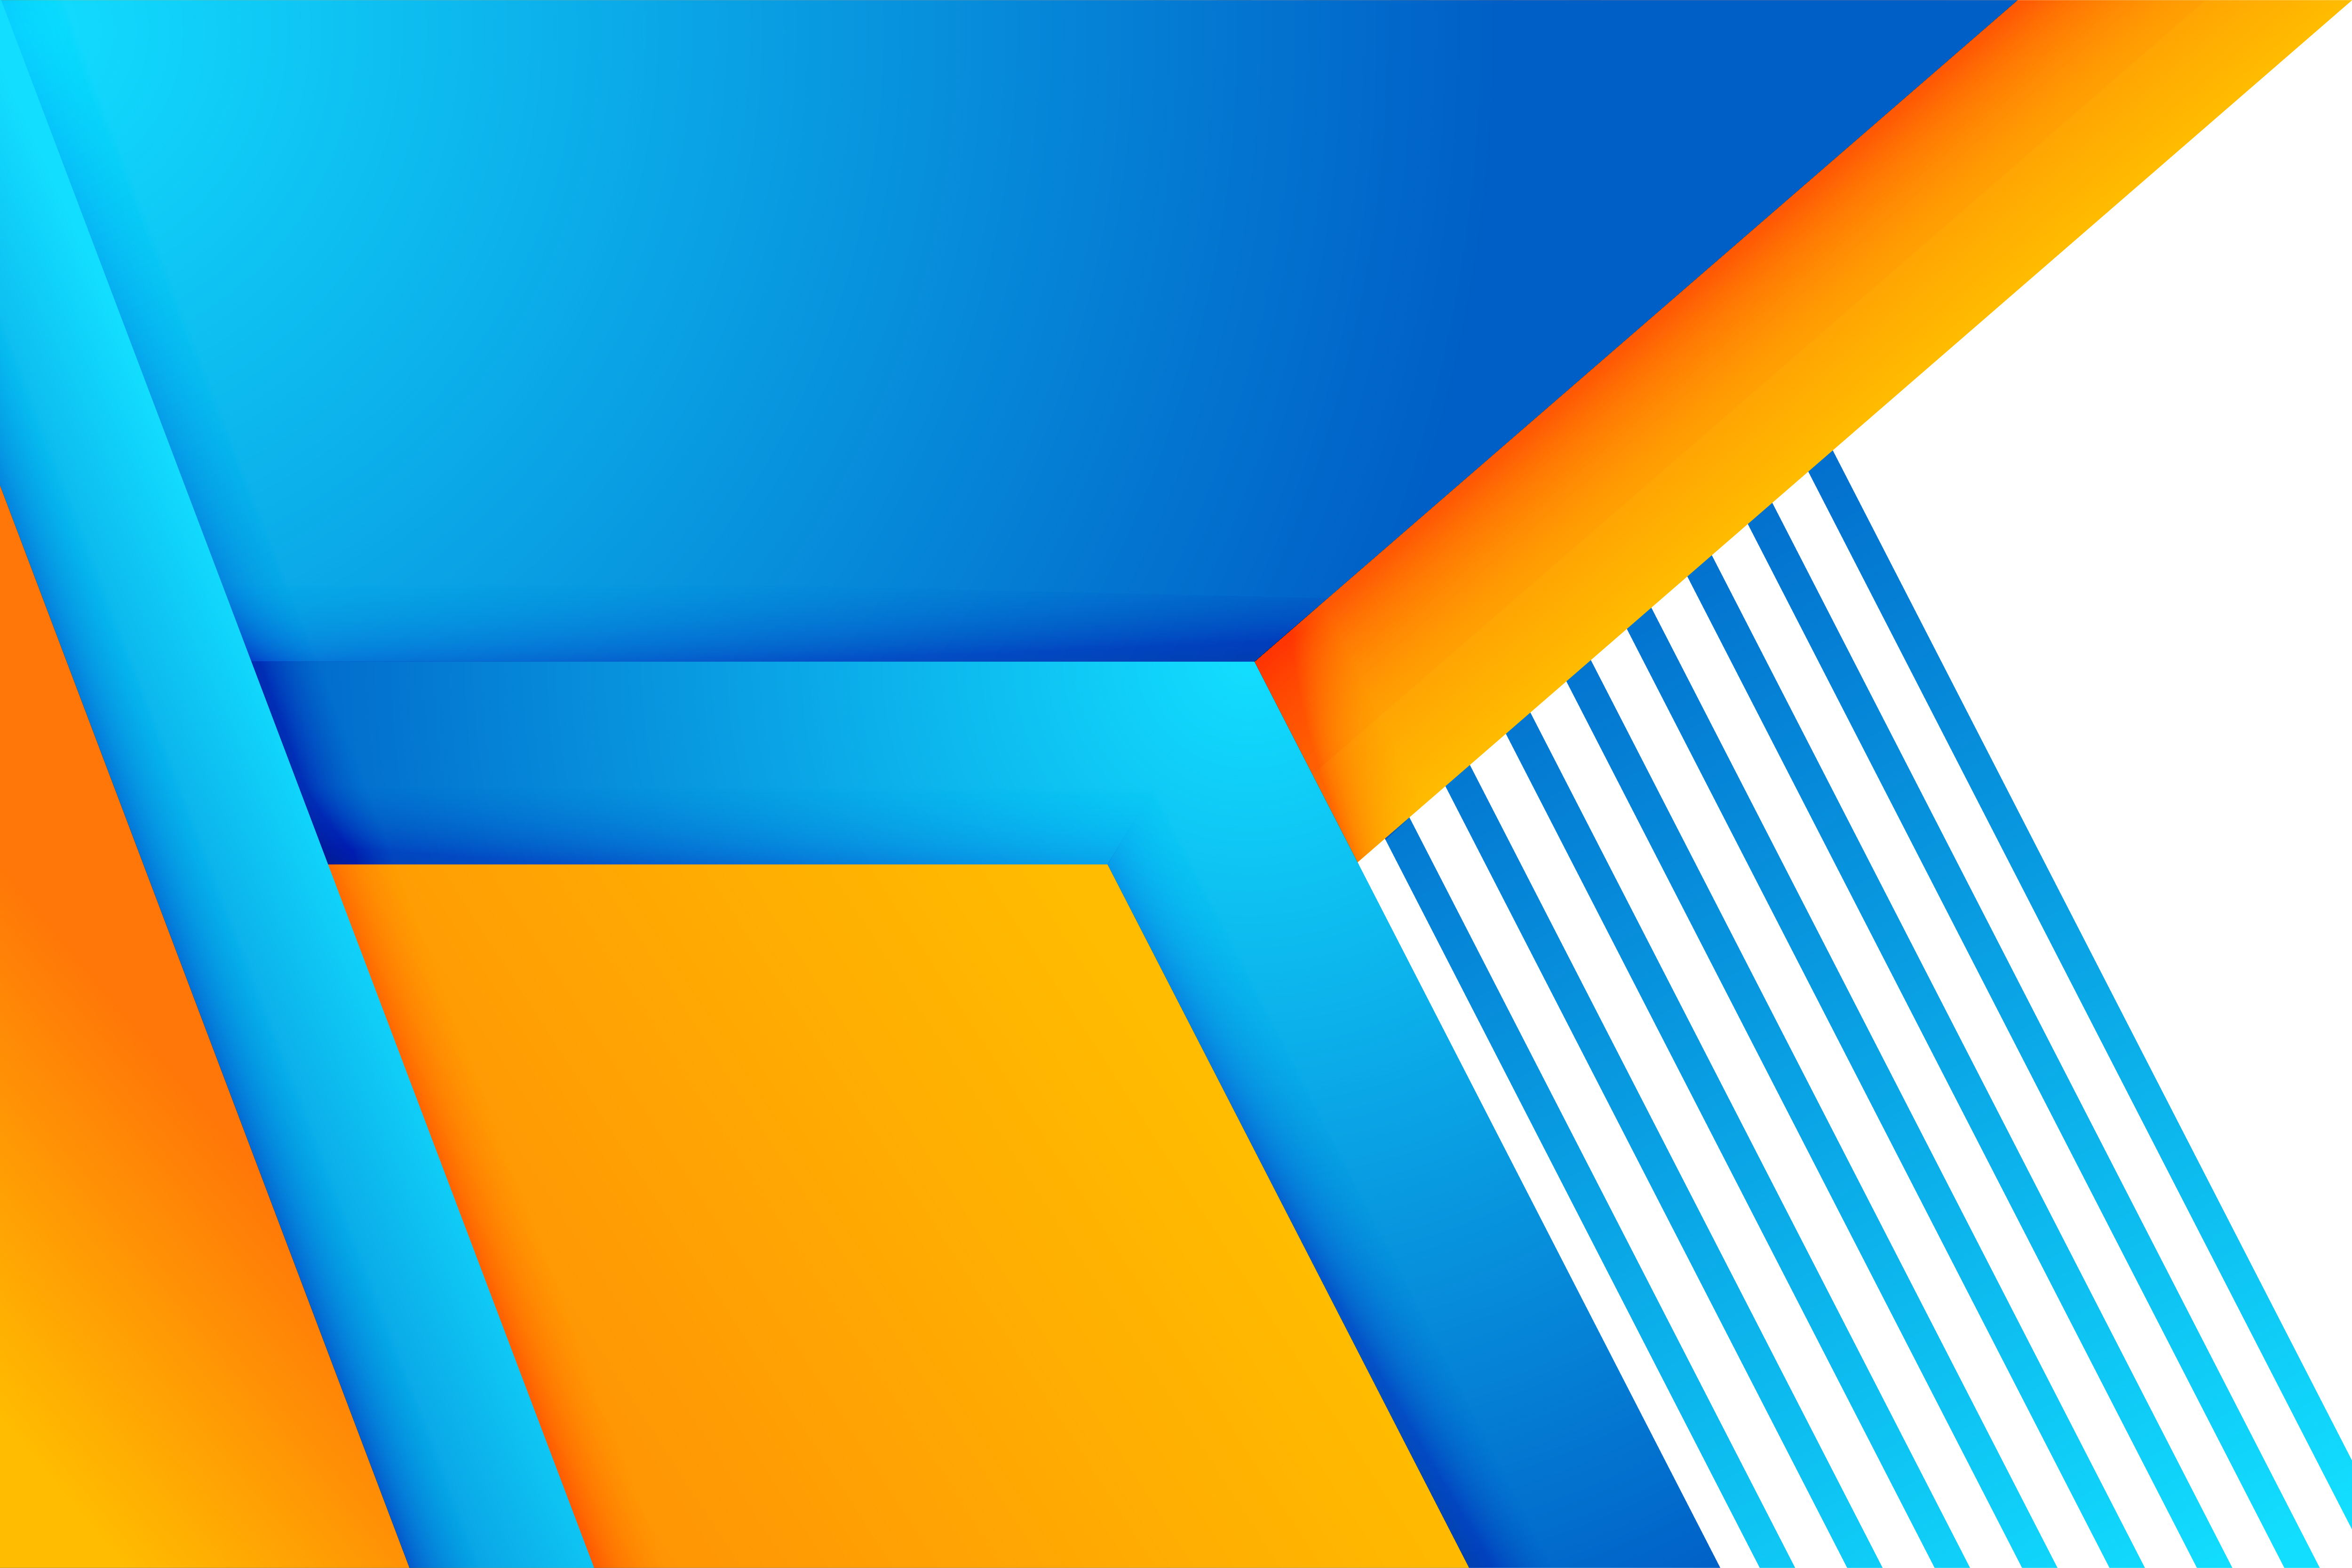 Download Free Orange Blue Gradient Background Graphic By Noory Shopper for Cricut Explore, Silhouette and other cutting machines.